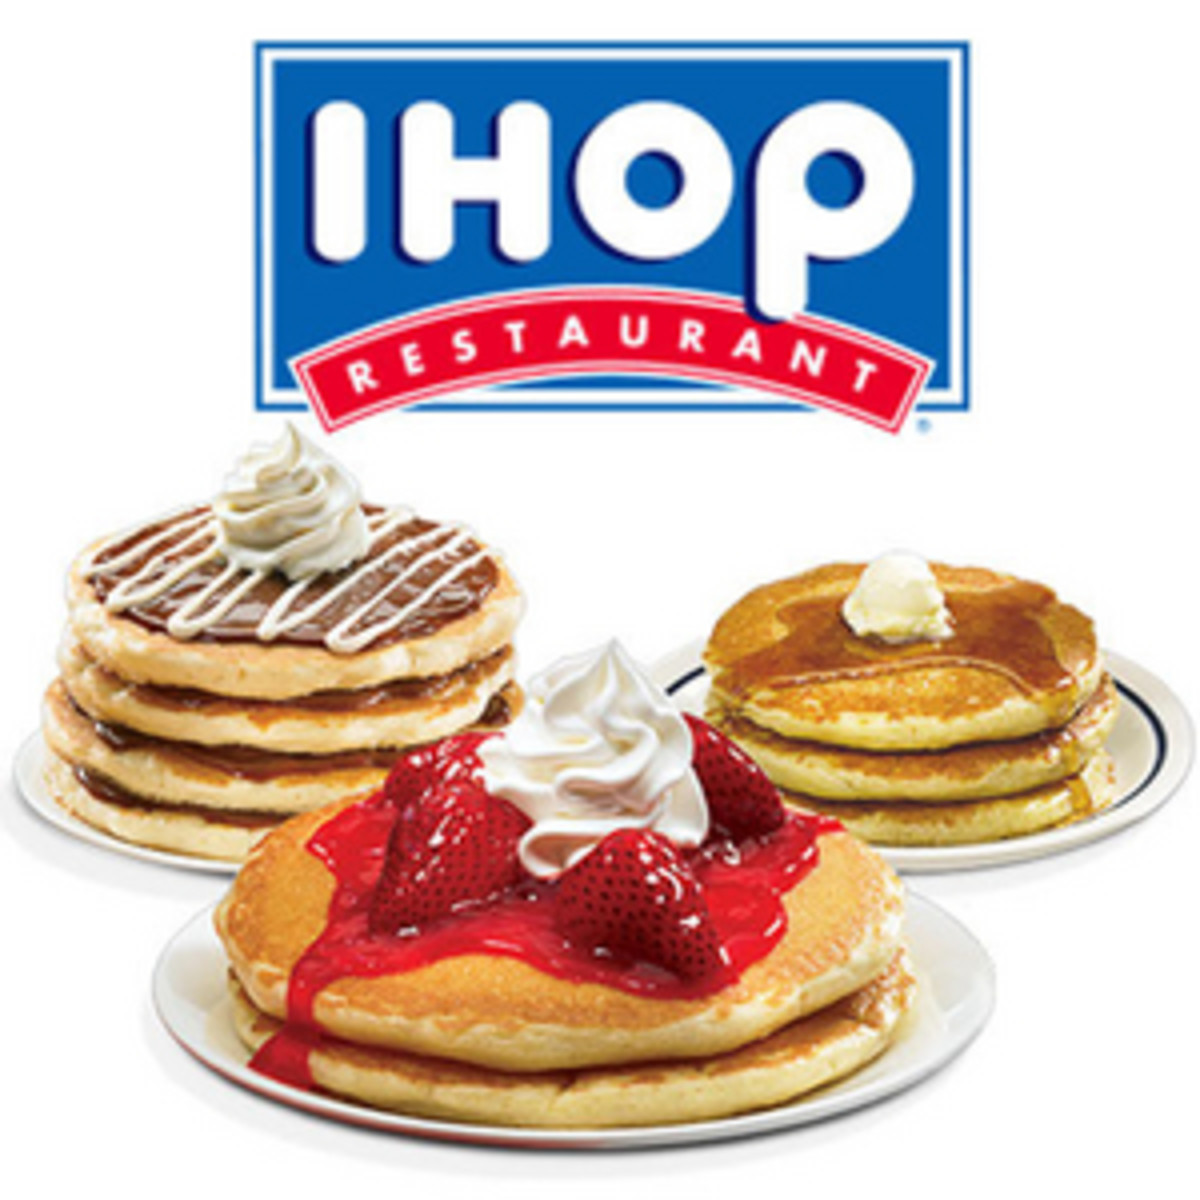 7 Reasons to Eat at IHOP HubPages